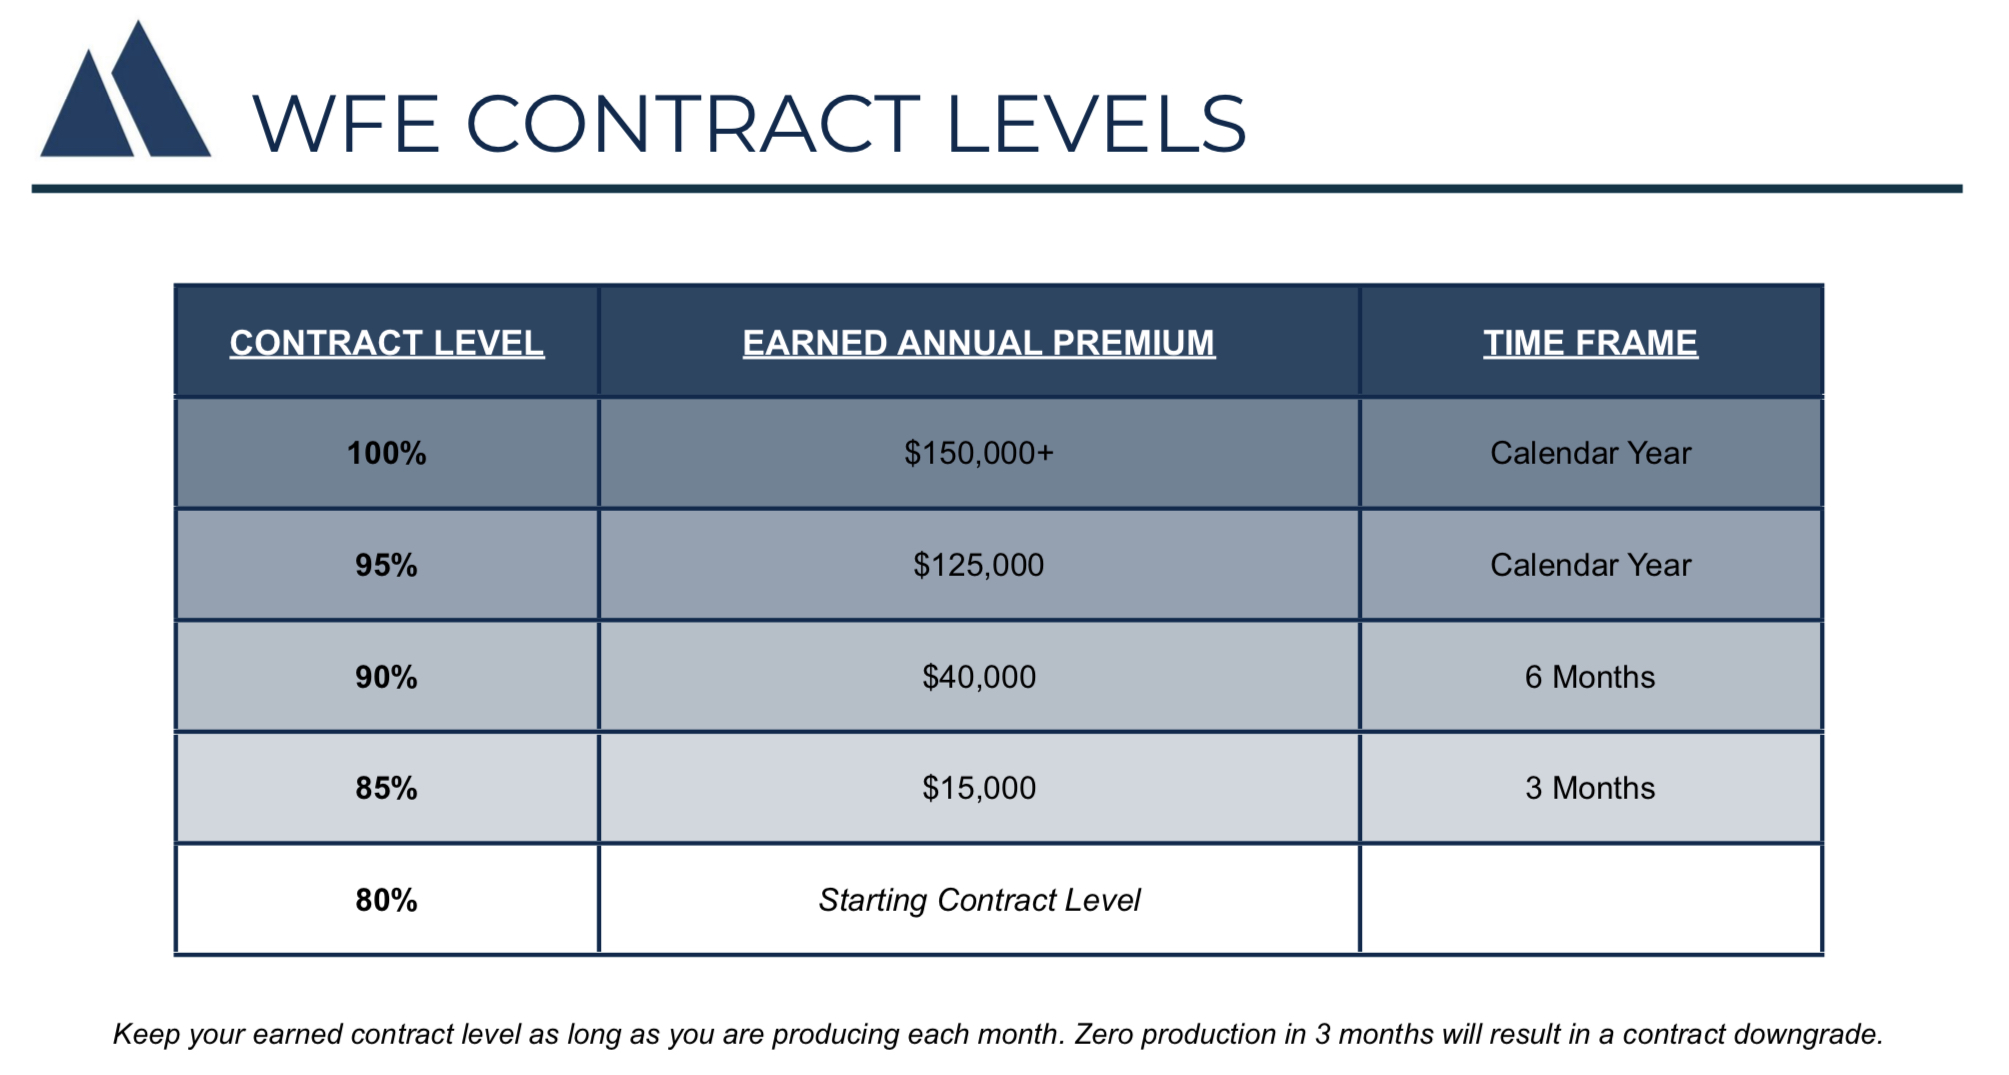 CONTRACT LEVELS - Agents start at an 80% contract and are able to climb to higher levels within months depending on production.